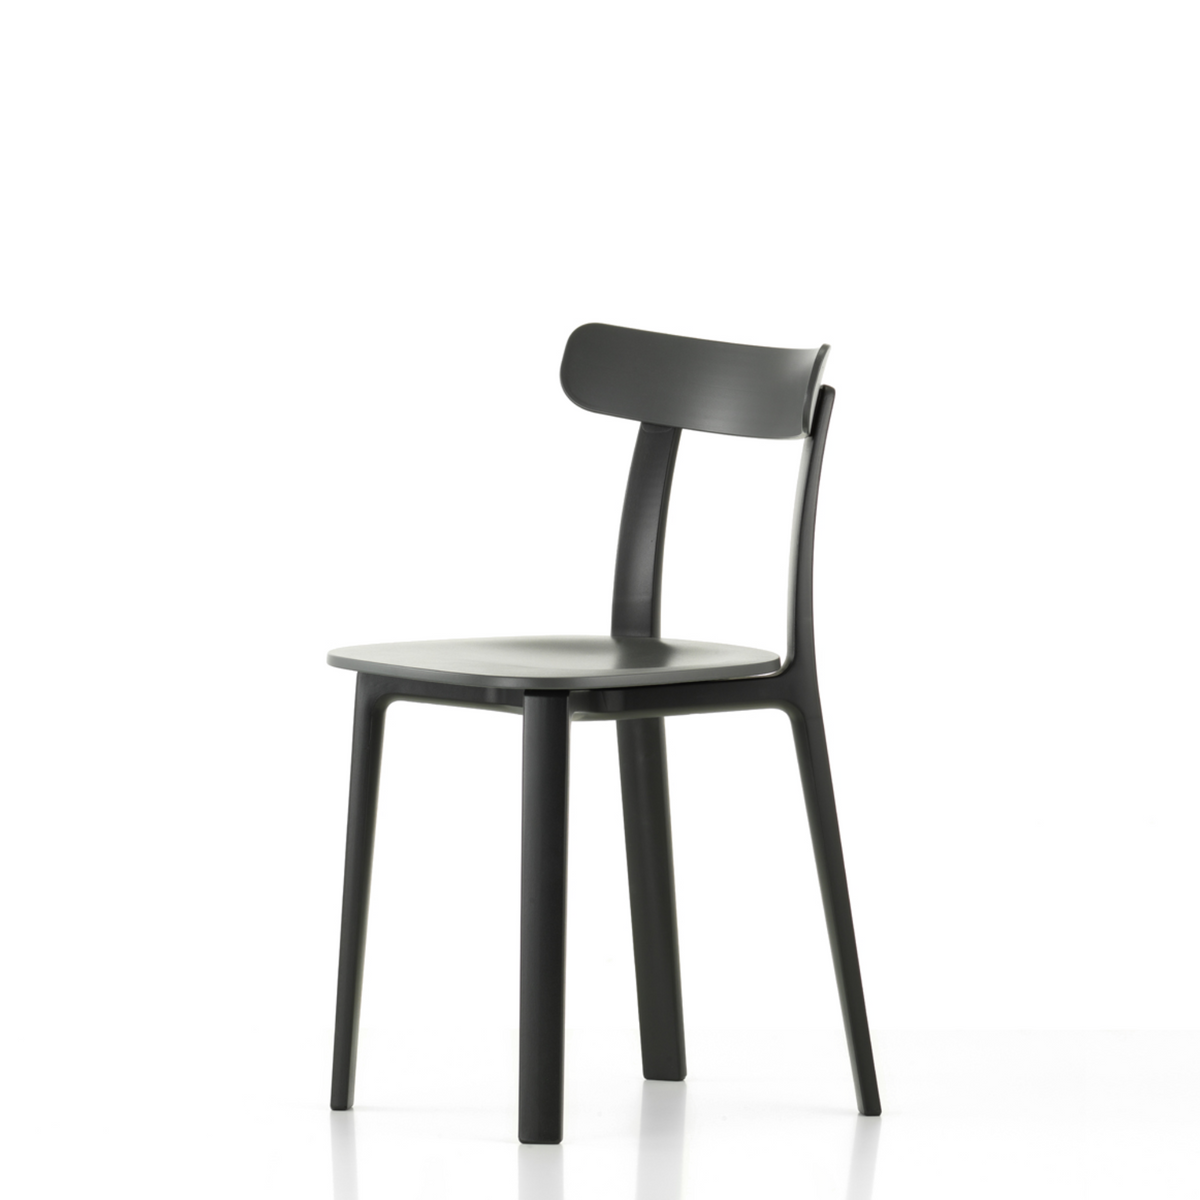 Vitra Office All Plastic Chair by Jasper Morrison Graphite Grey